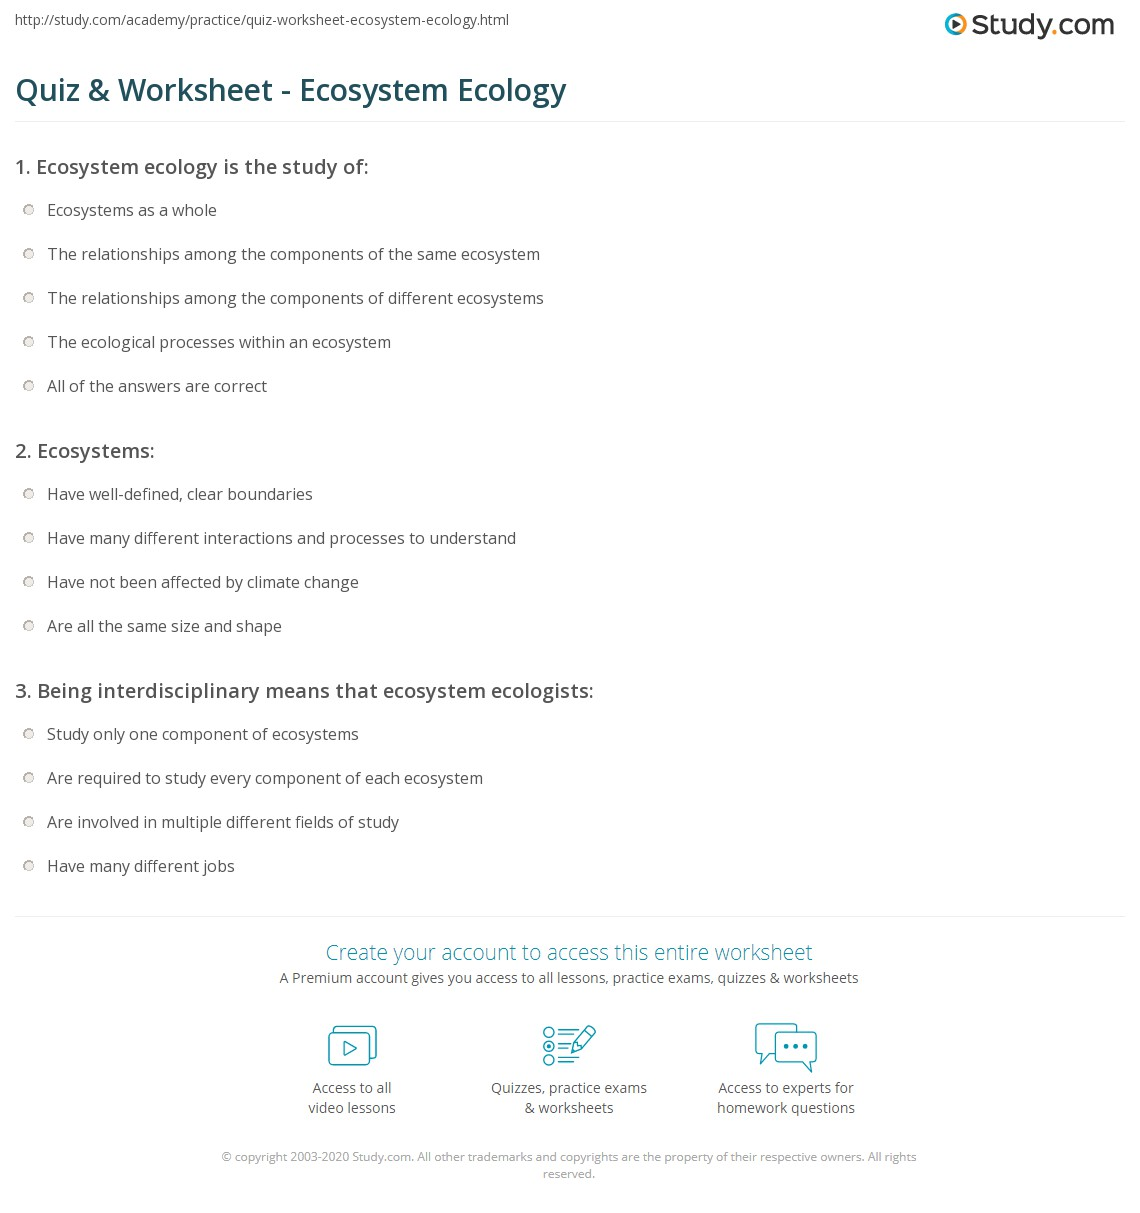 worksheet Ecosystems Worksheet quiz worksheet ecosystem ecology study com print definition explanation worksheet